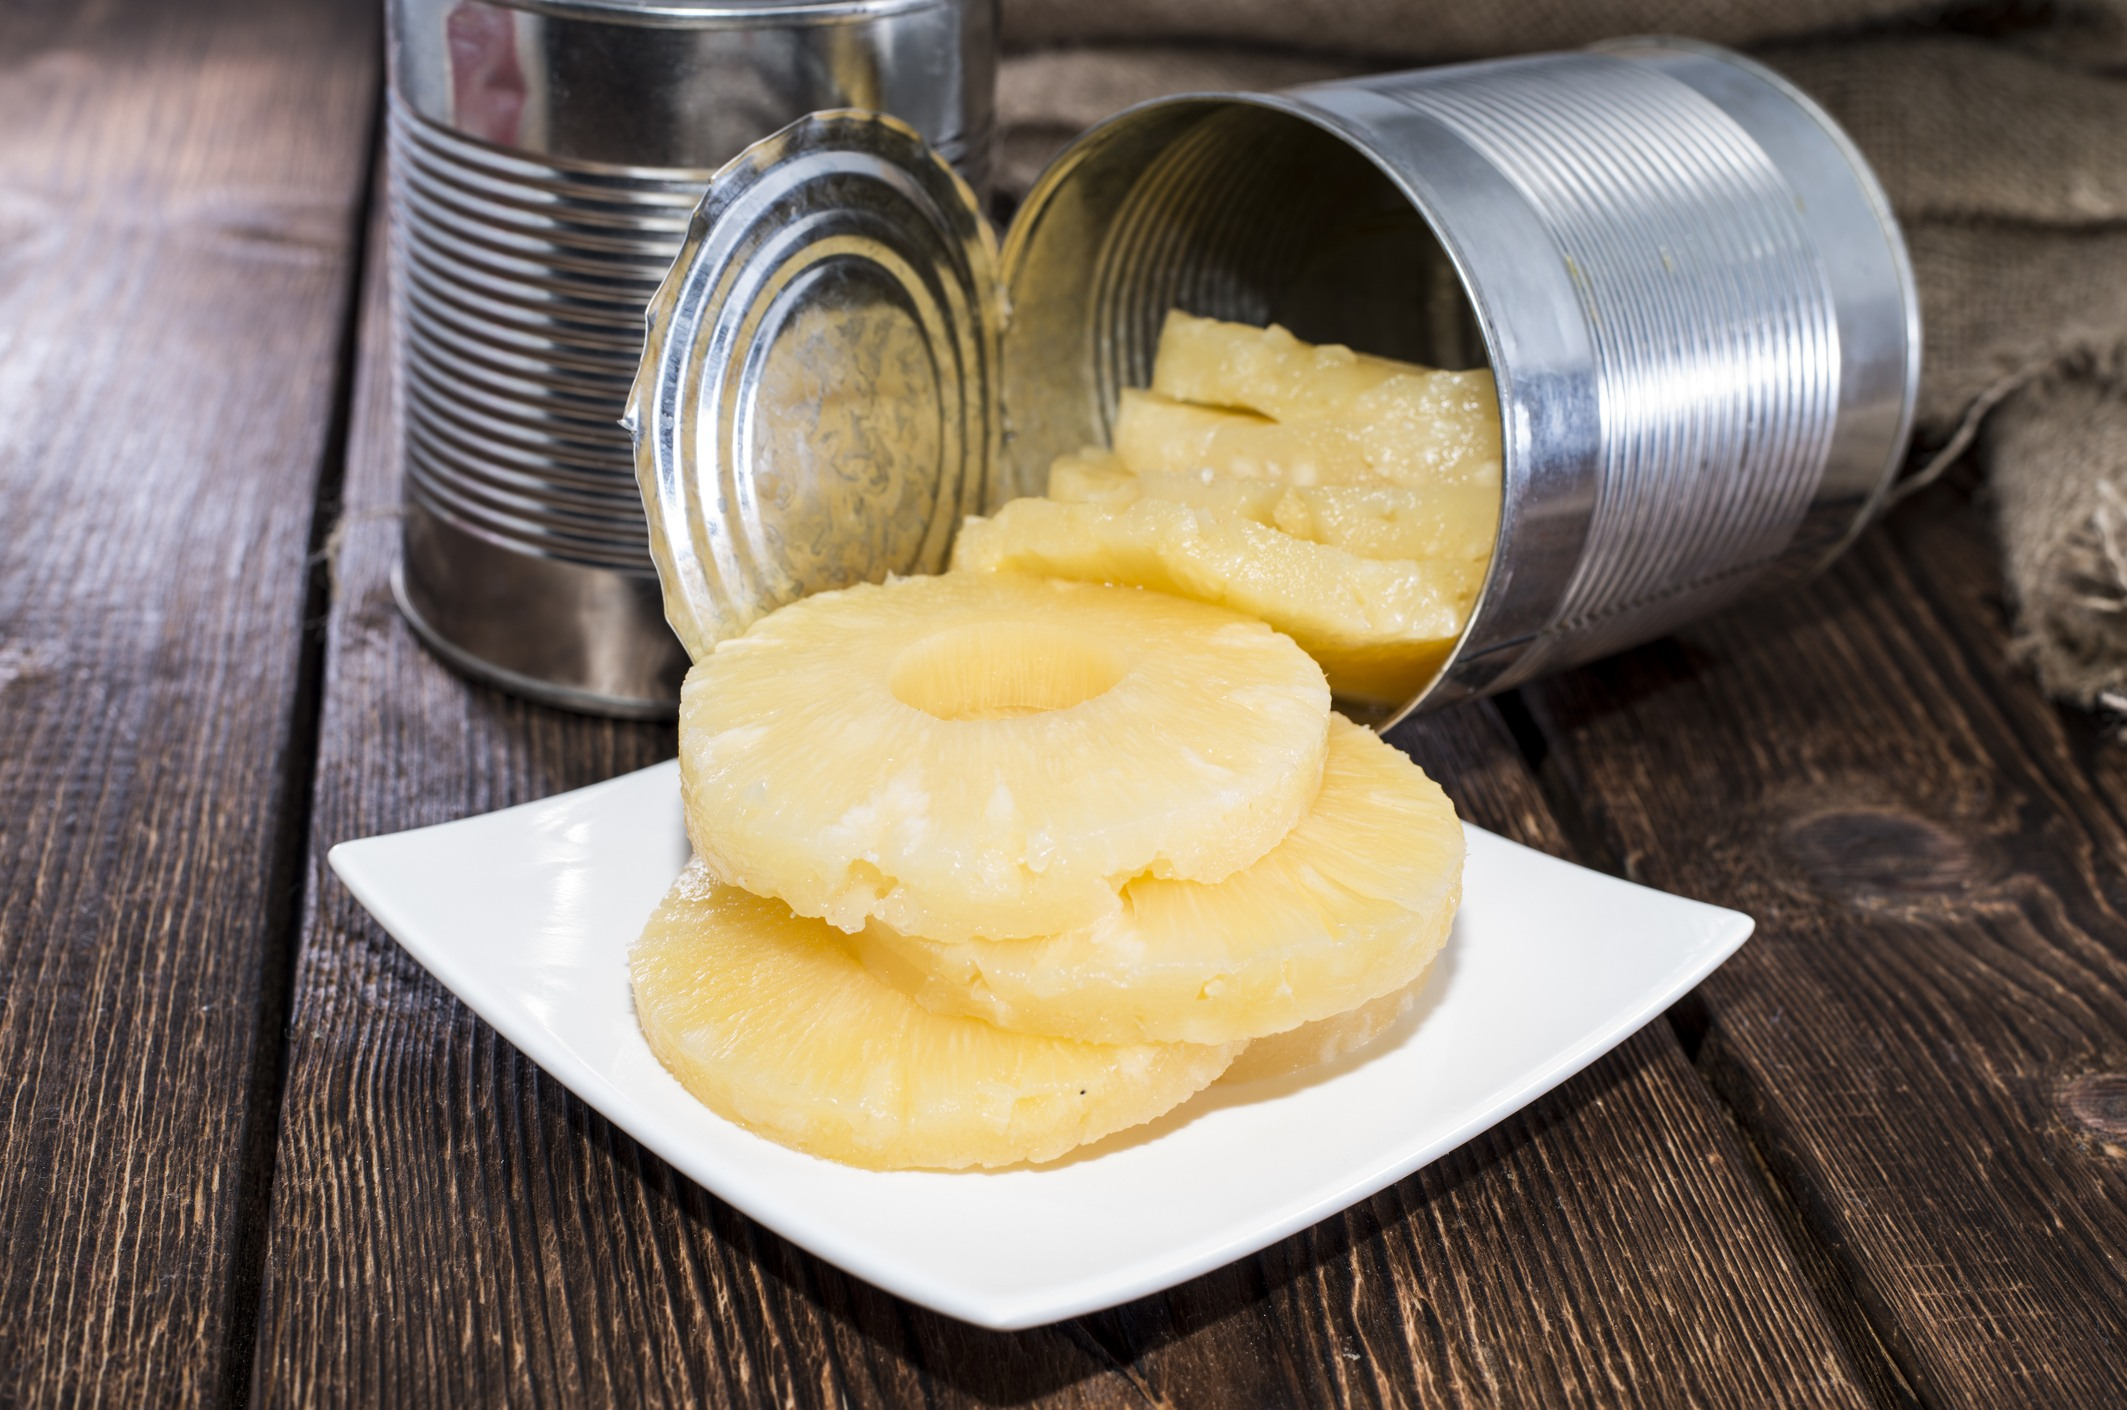 Canned Pineapple on wood